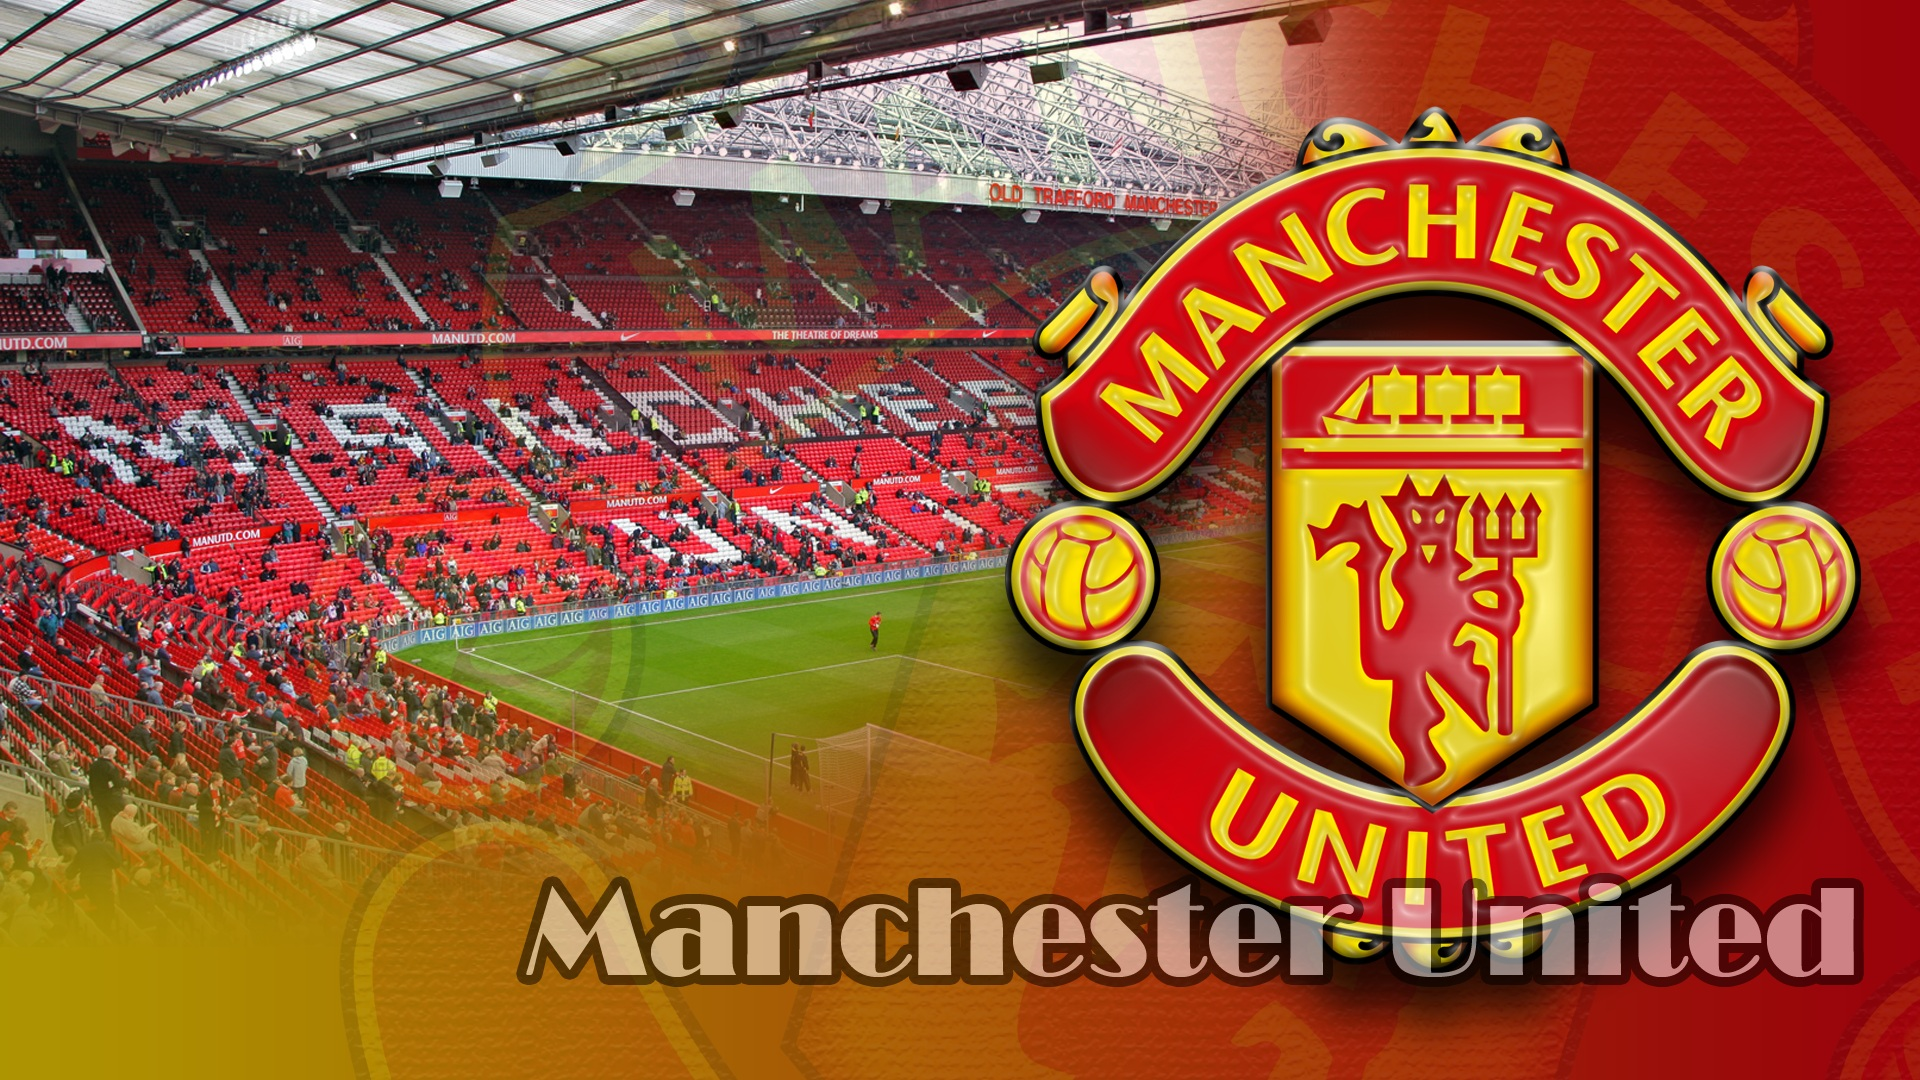 Manchester United Images Free Download 1920x1080 Download Hd Wallpaper Wallpapertip